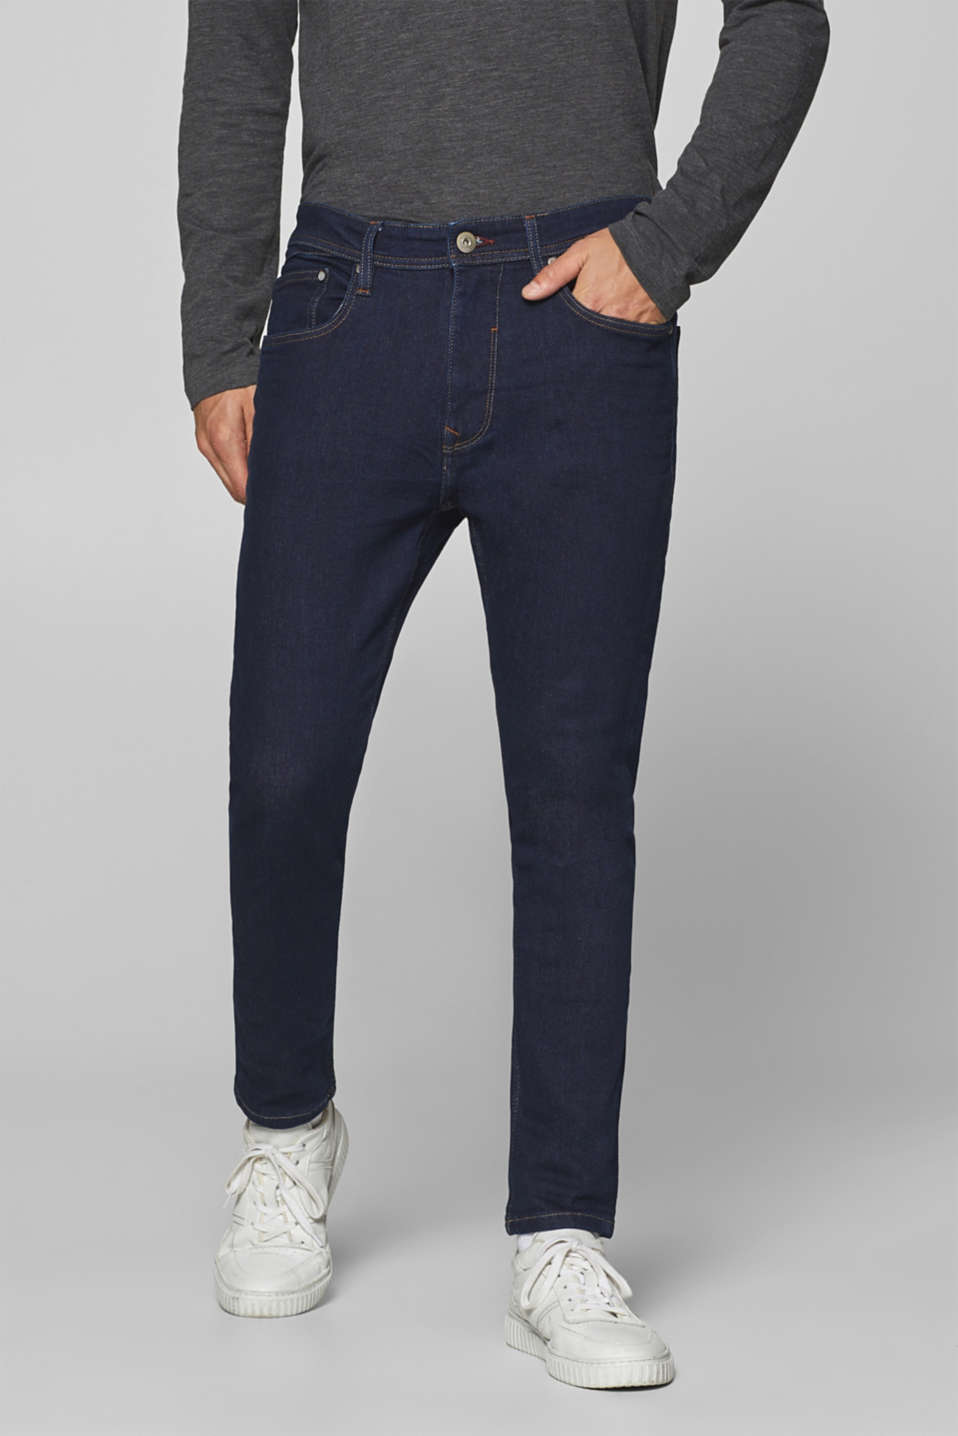 edc - Indigo-dyed stretch jeans